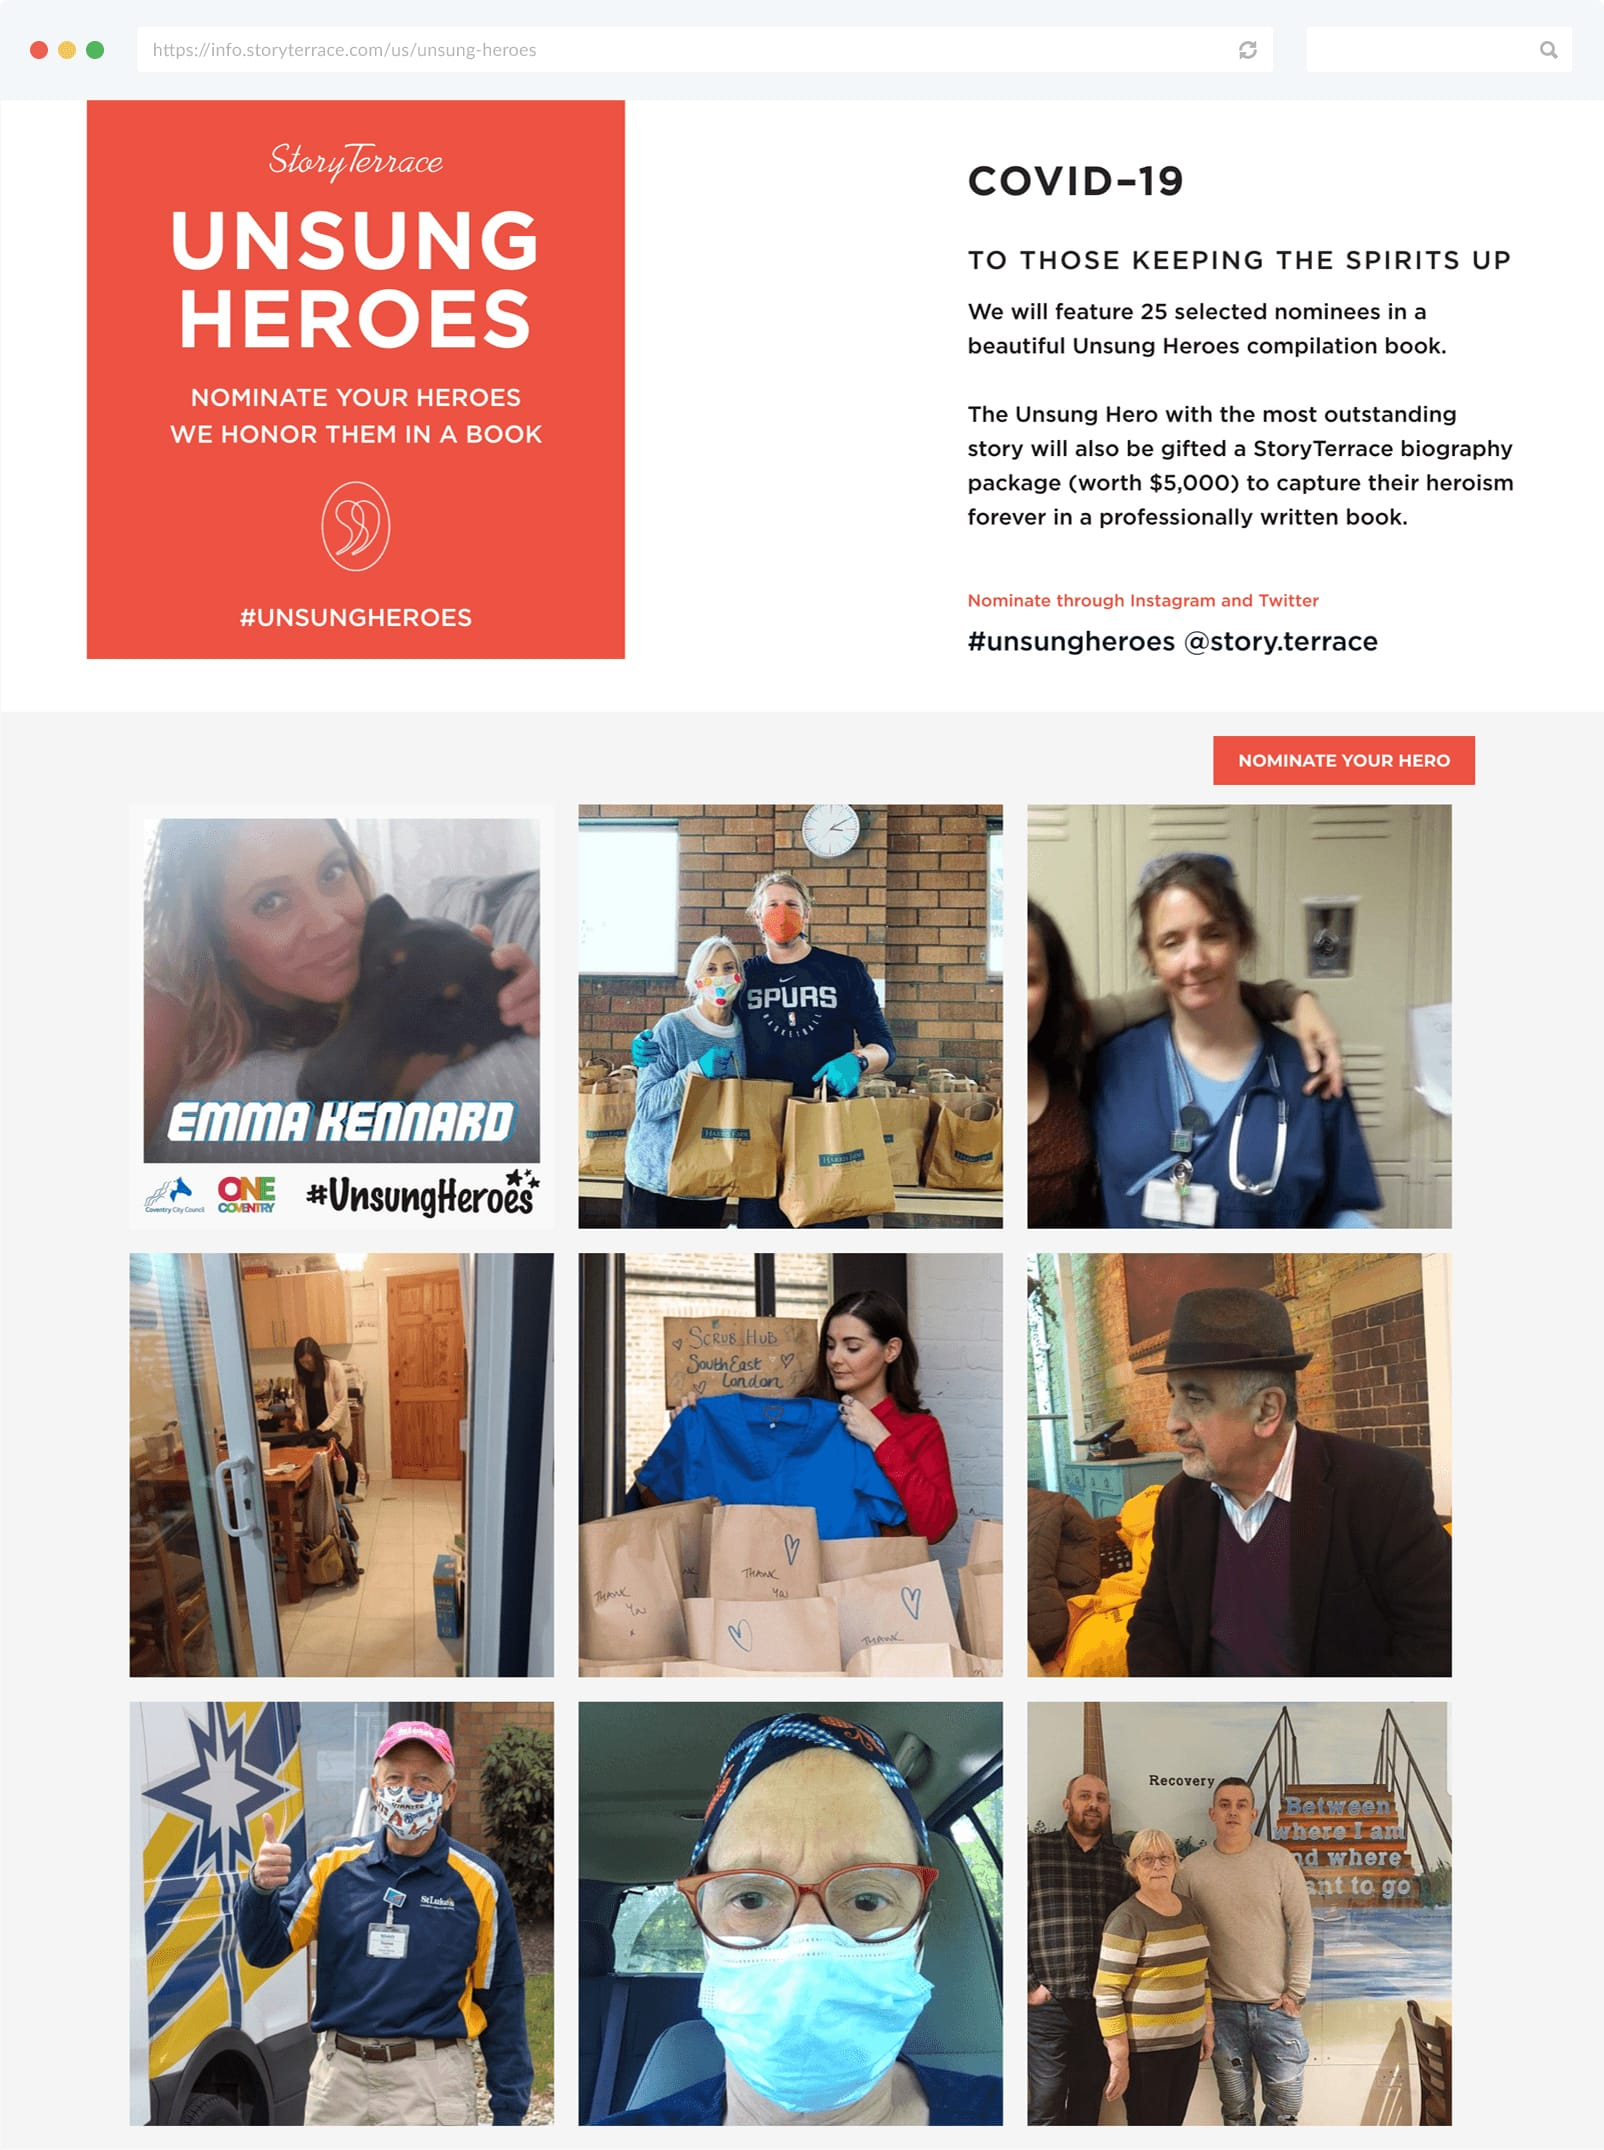 StoryTerrace's Unsung Heroes campaign landing page with photo gallery